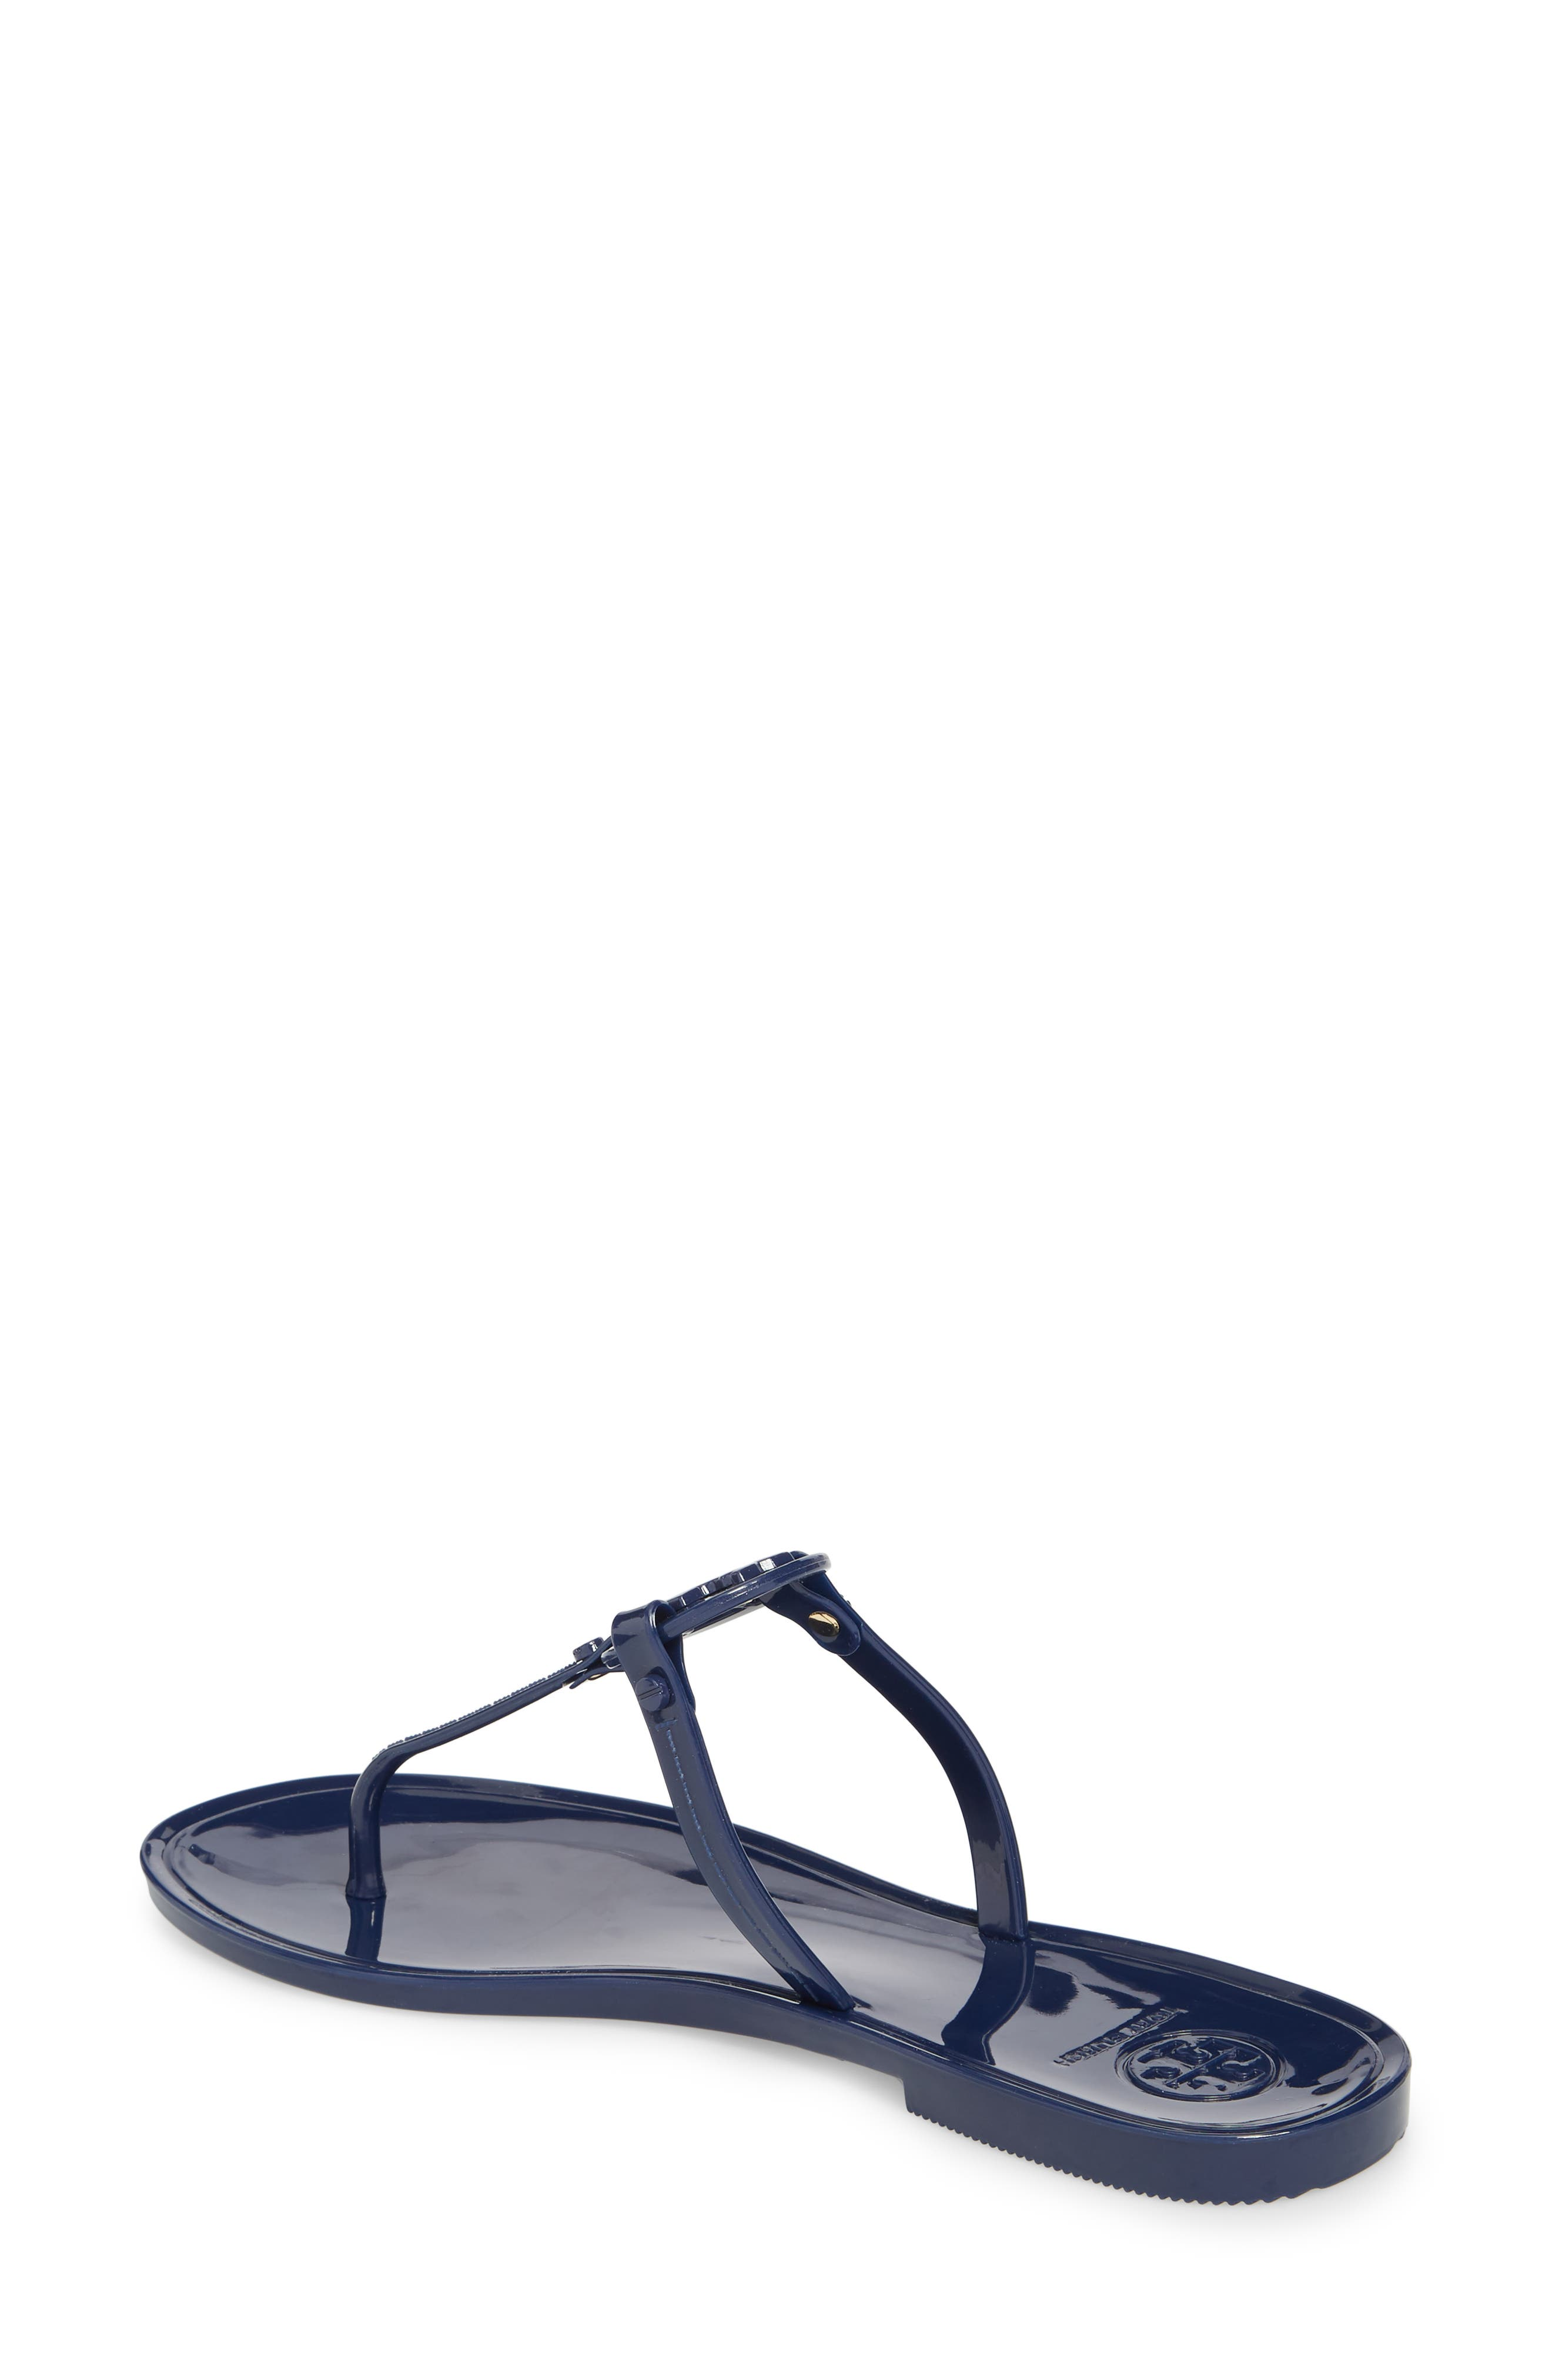 'Mini Miller' Flat Sandal,                             Alternate thumbnail 2, color,                             BRIGHT INDIGO